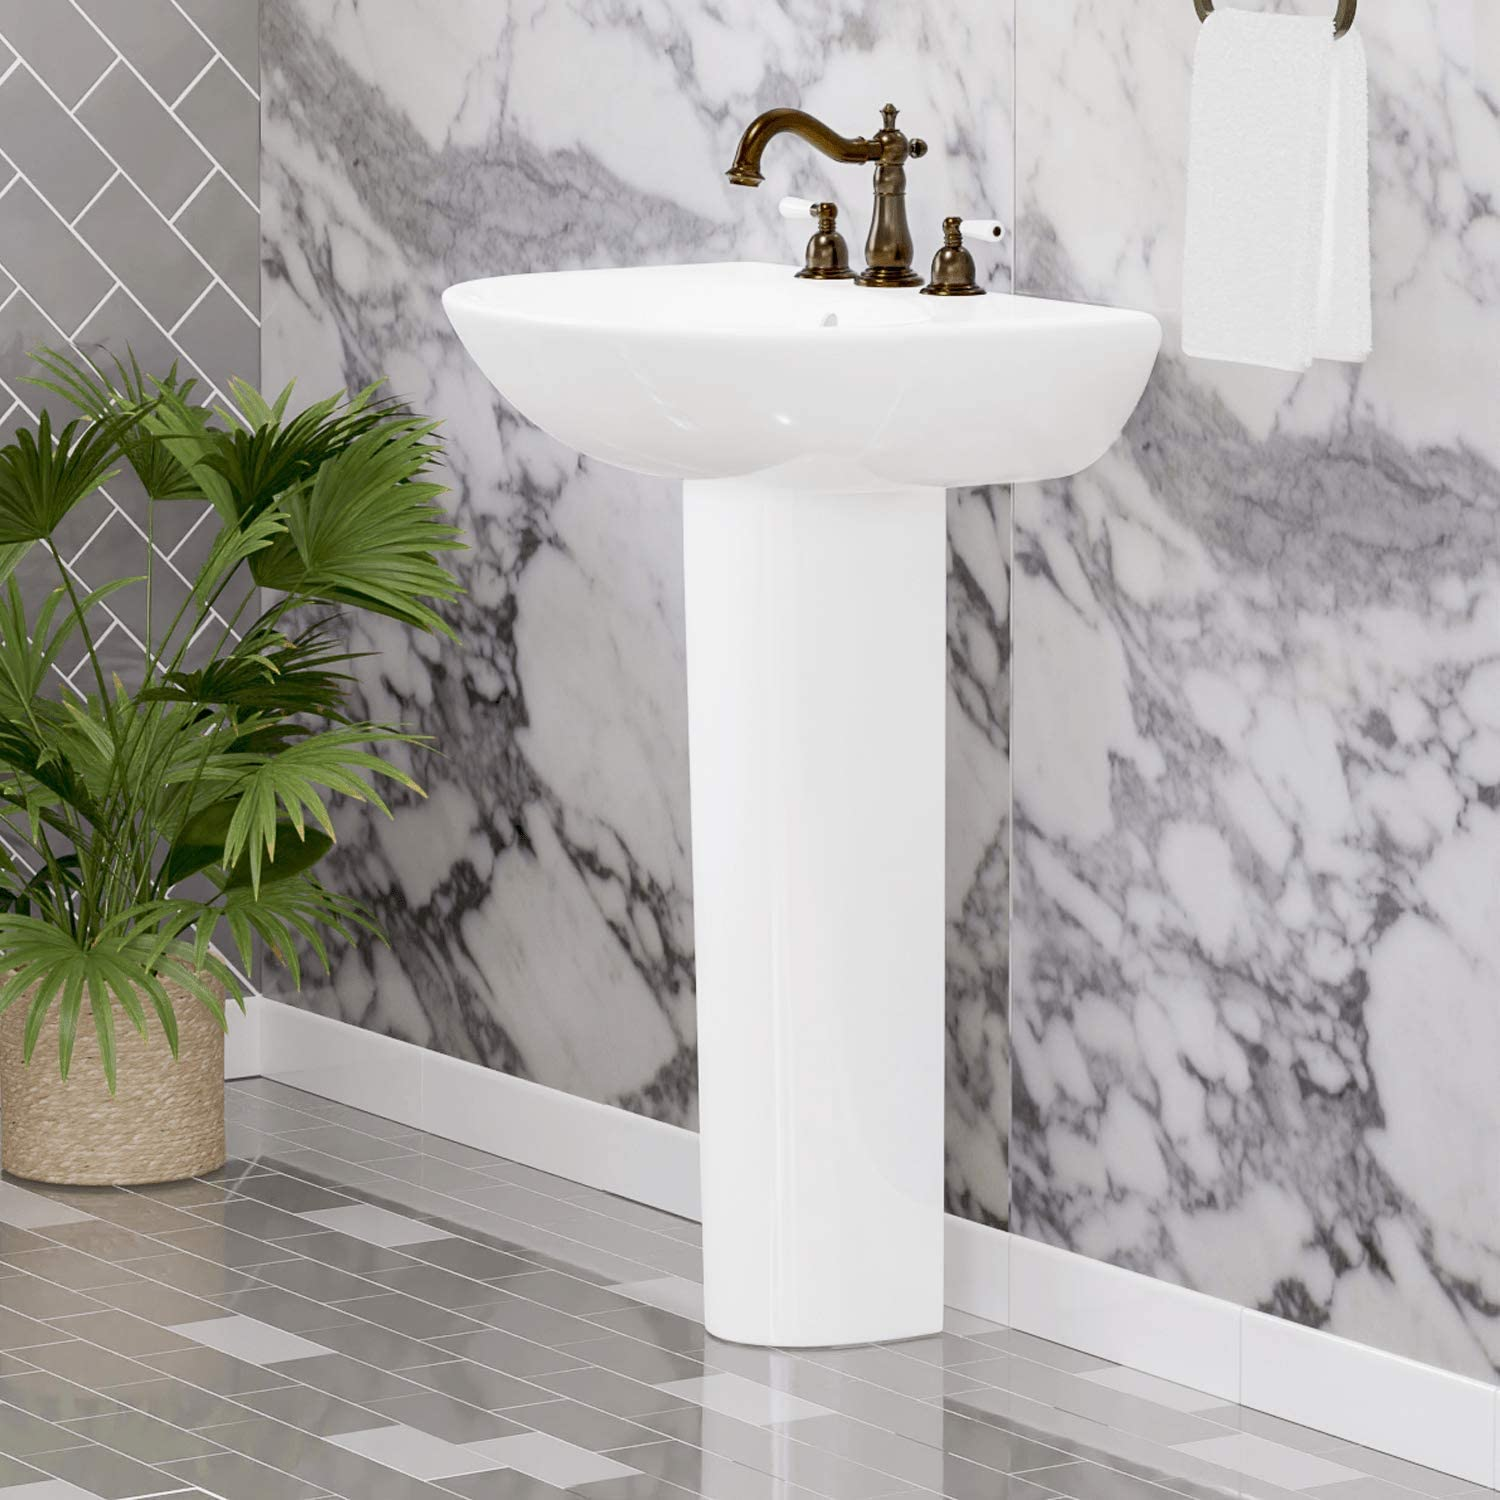 Magnus Home Products Aiken 200 Directly managed store China Special price Bathroom Vitreous Pedestal